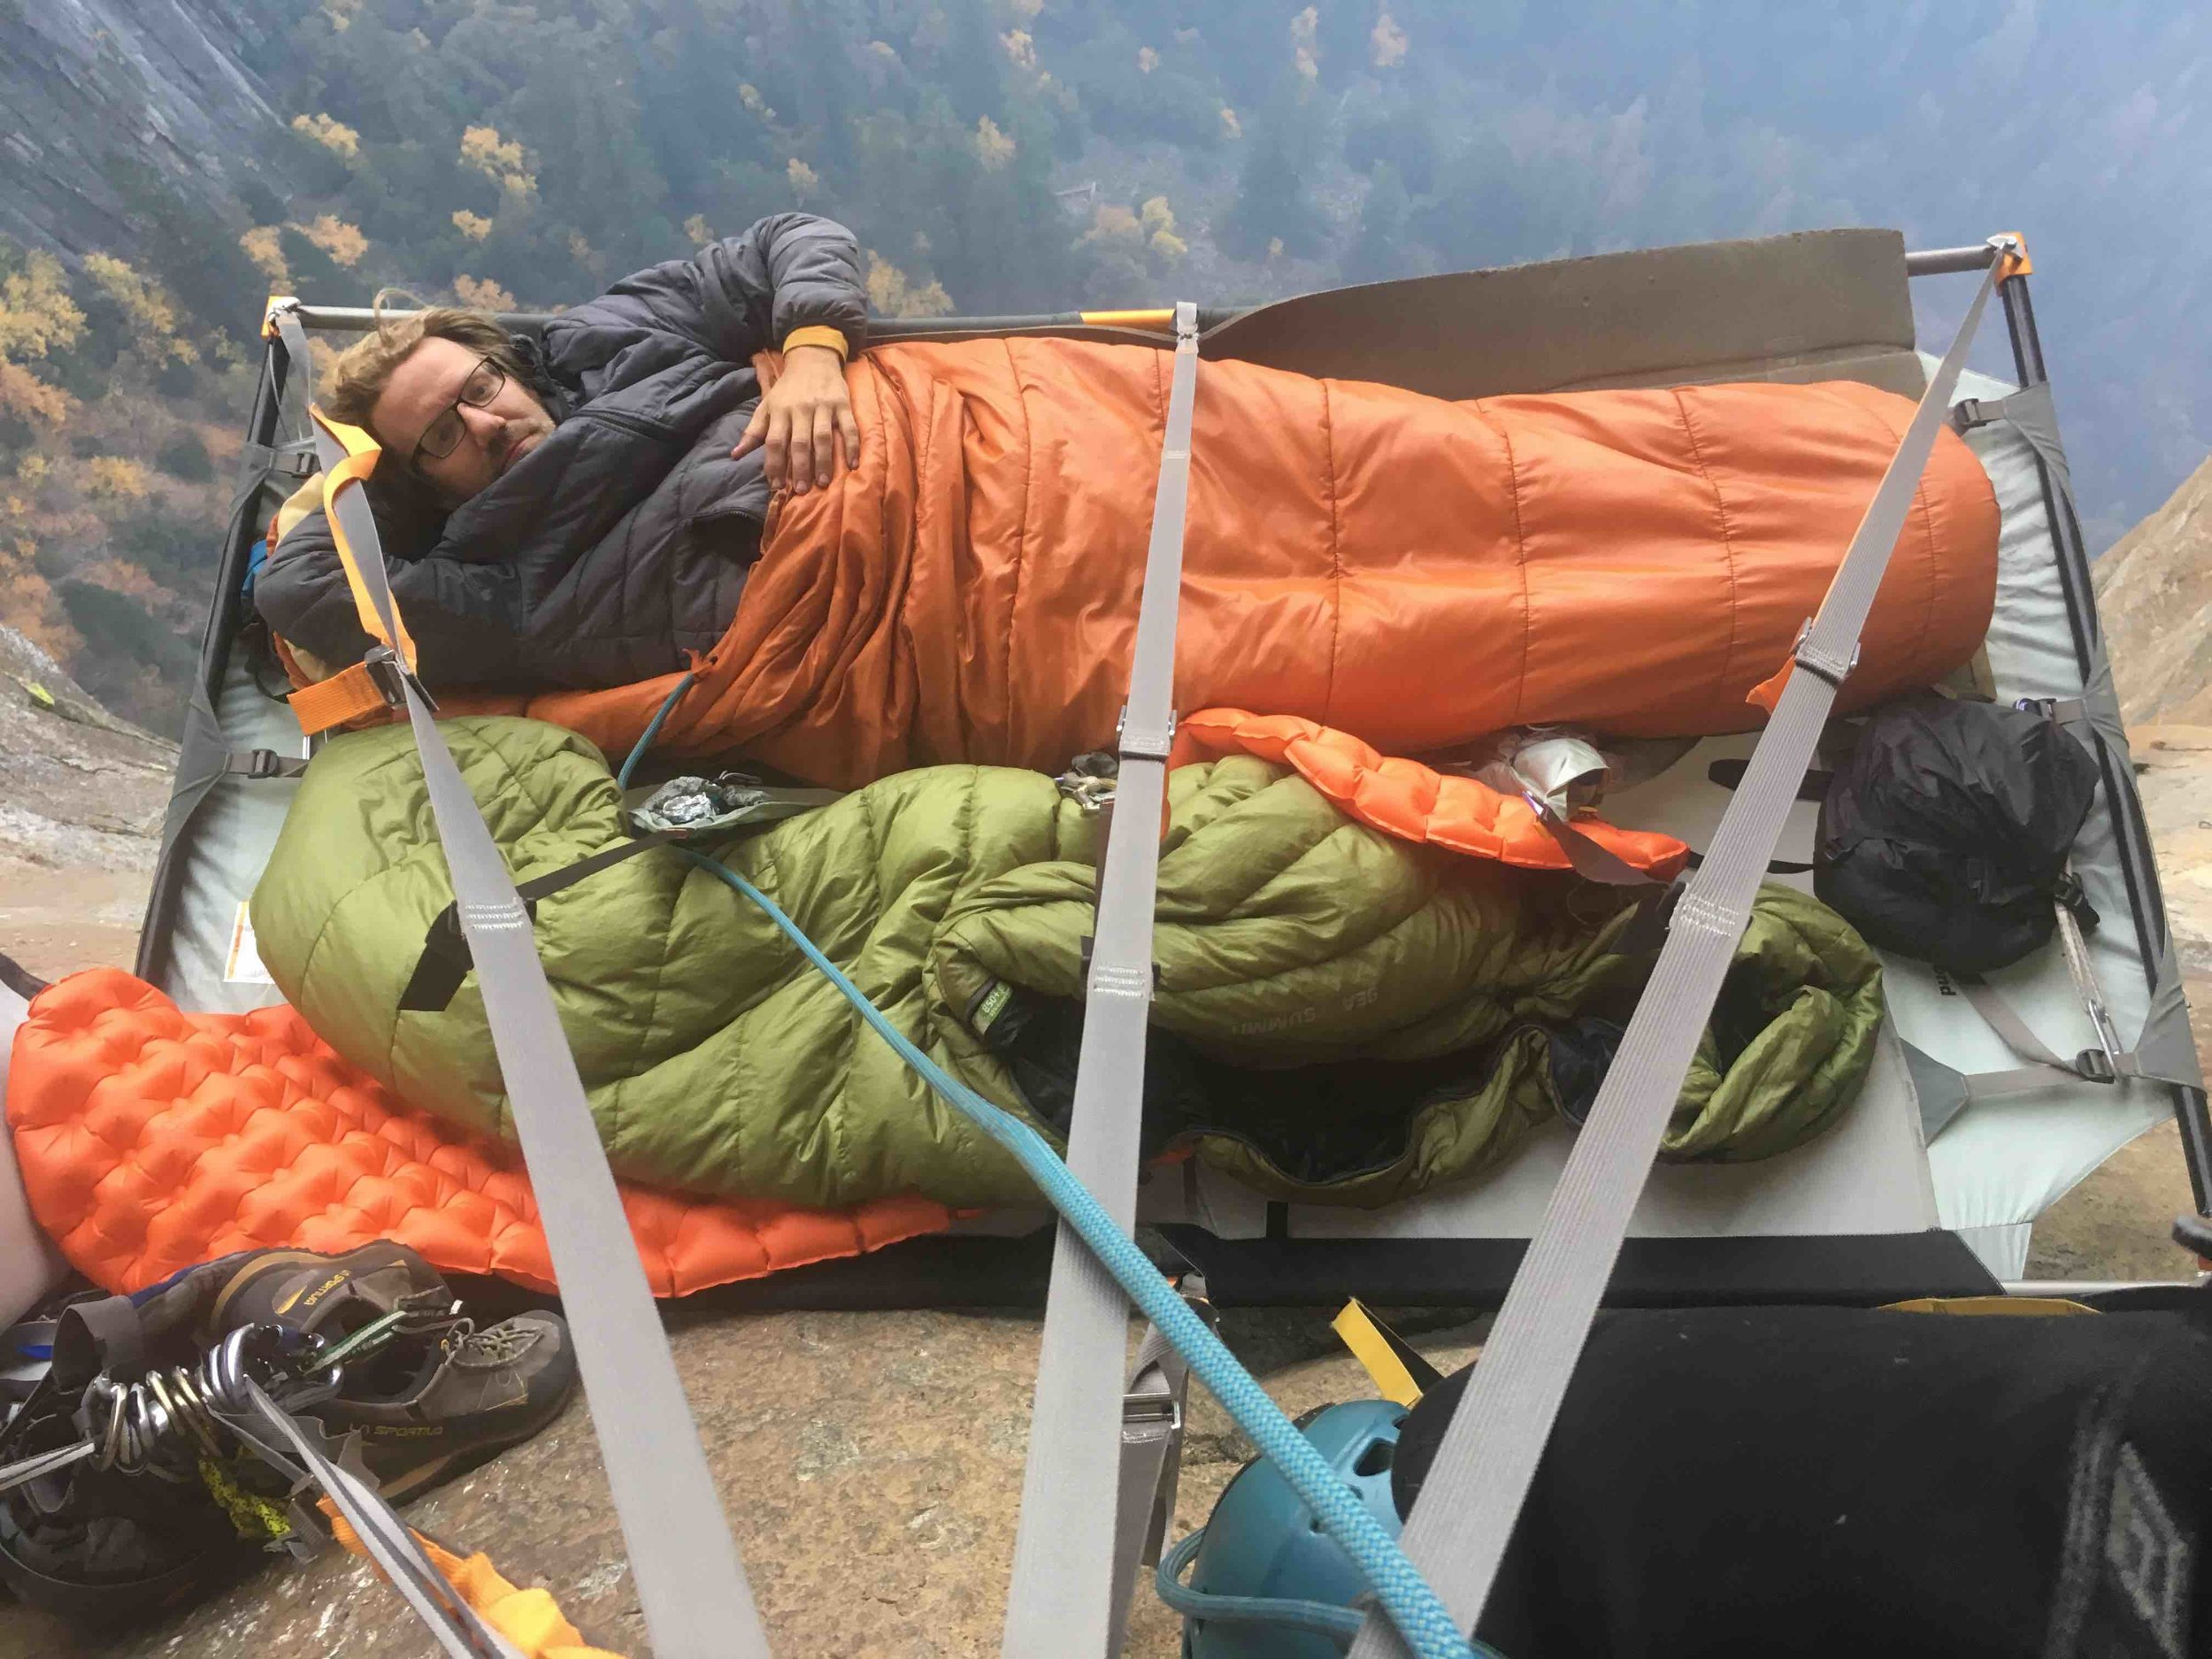 We spent our second bivy in the portaledge. Super comfy.